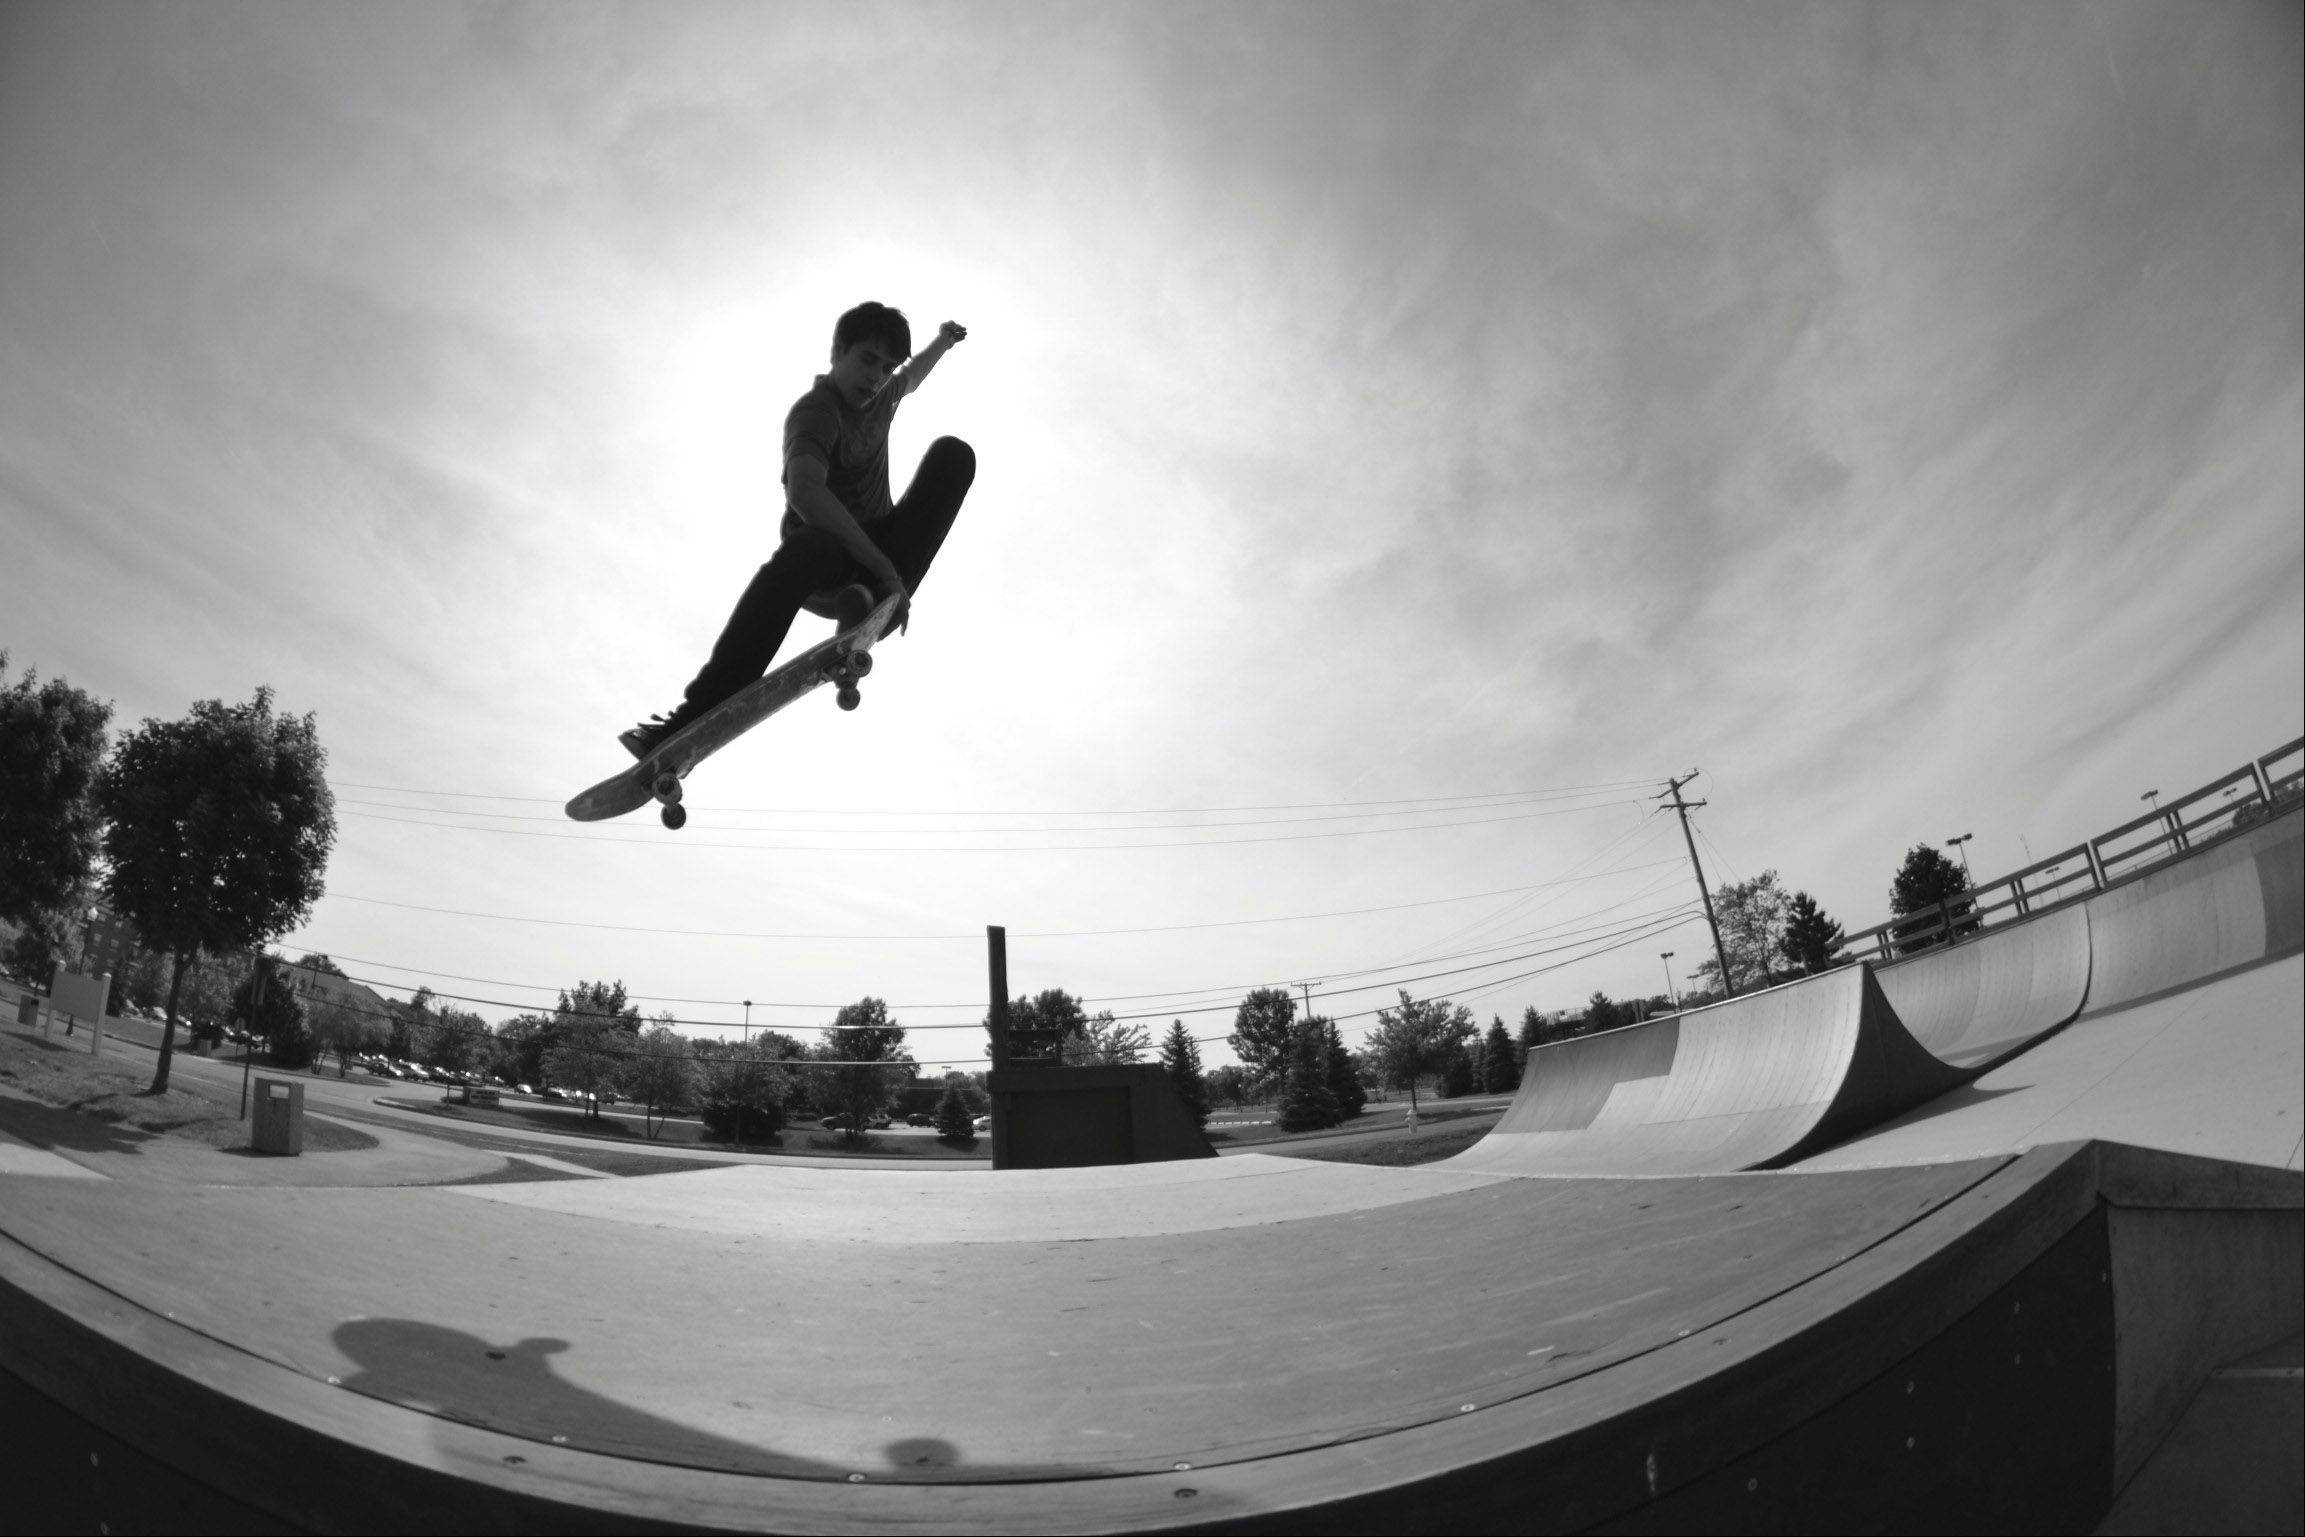 Brandon Garrity takes to the air over the flybox at Grayslake Skate Park last week.